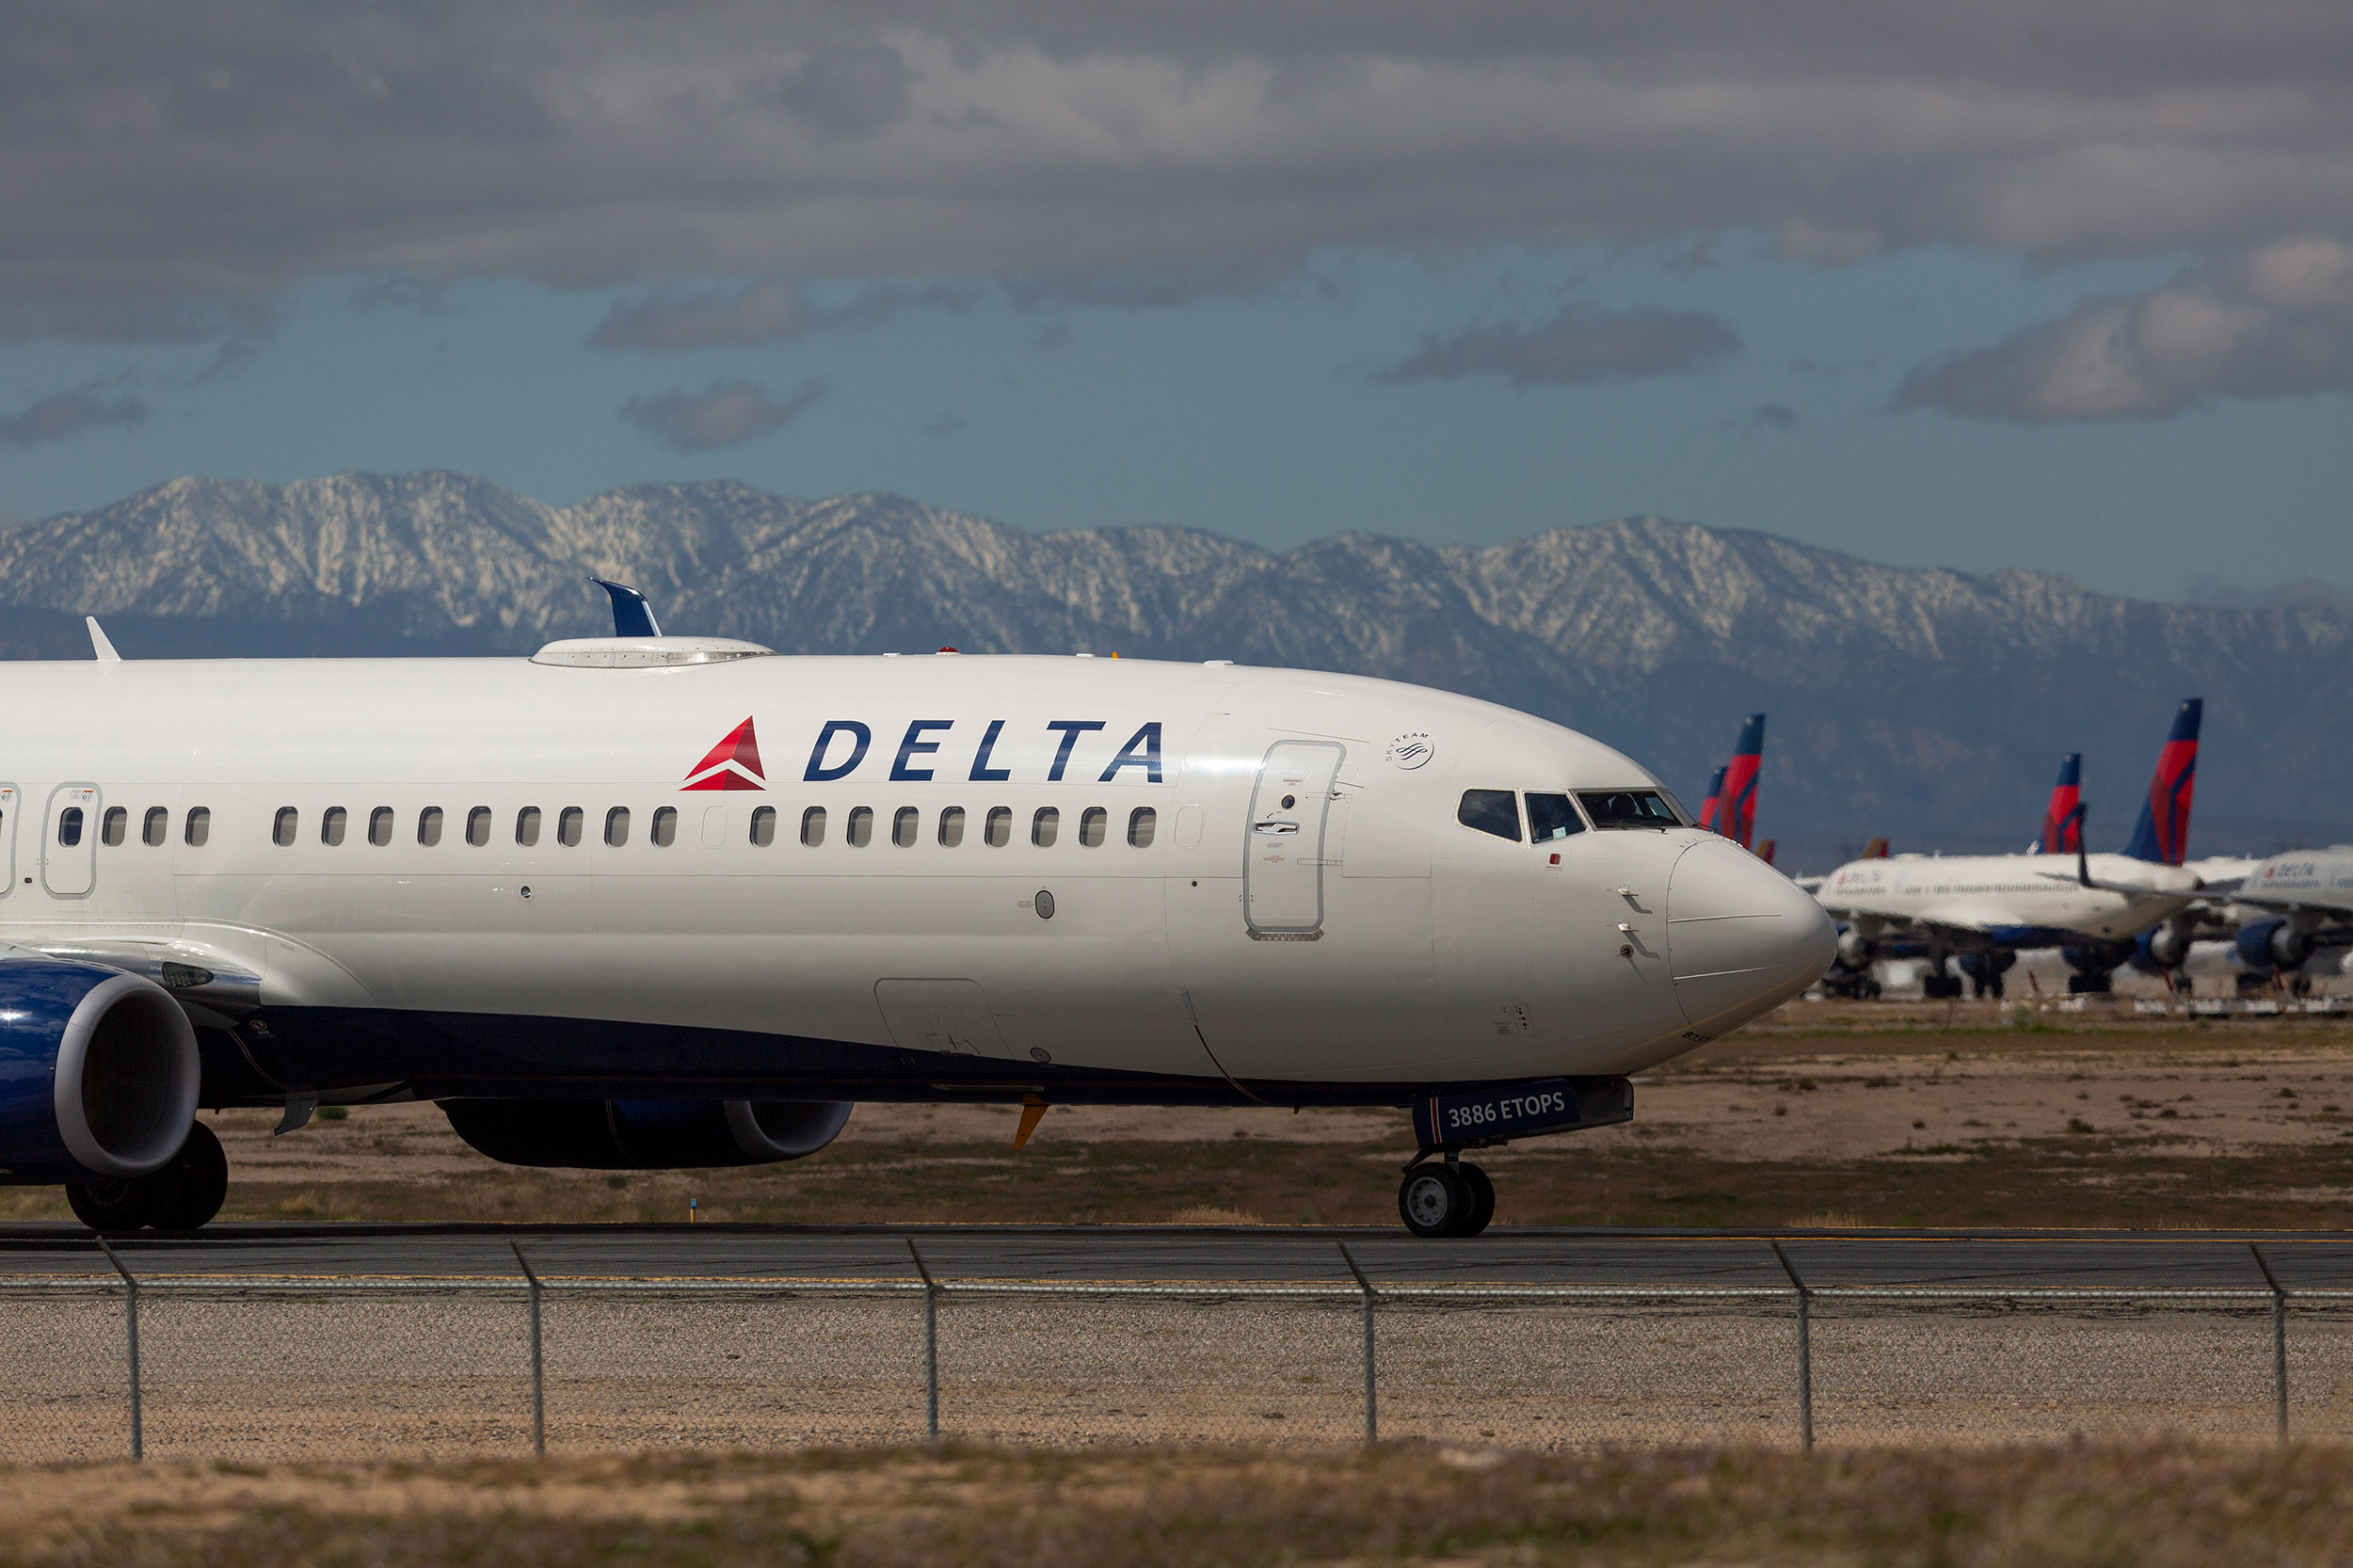 Delta cancels more than 500 flights this week amid crew shortages